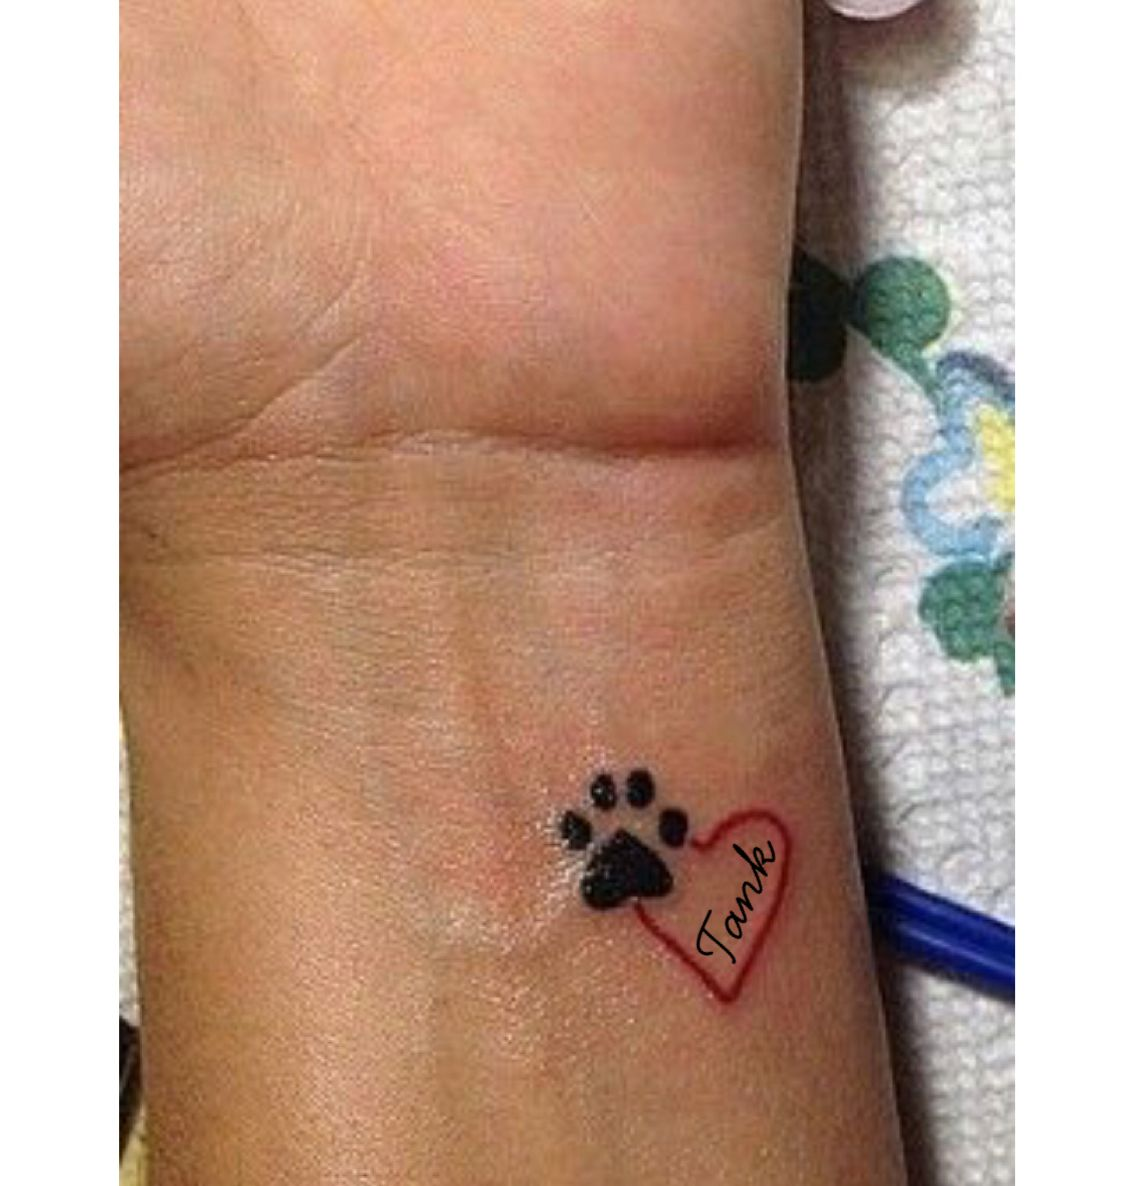 Dog Paw Print Tattoos On Foot: IF I Ever Considered Getting A Tattoo...